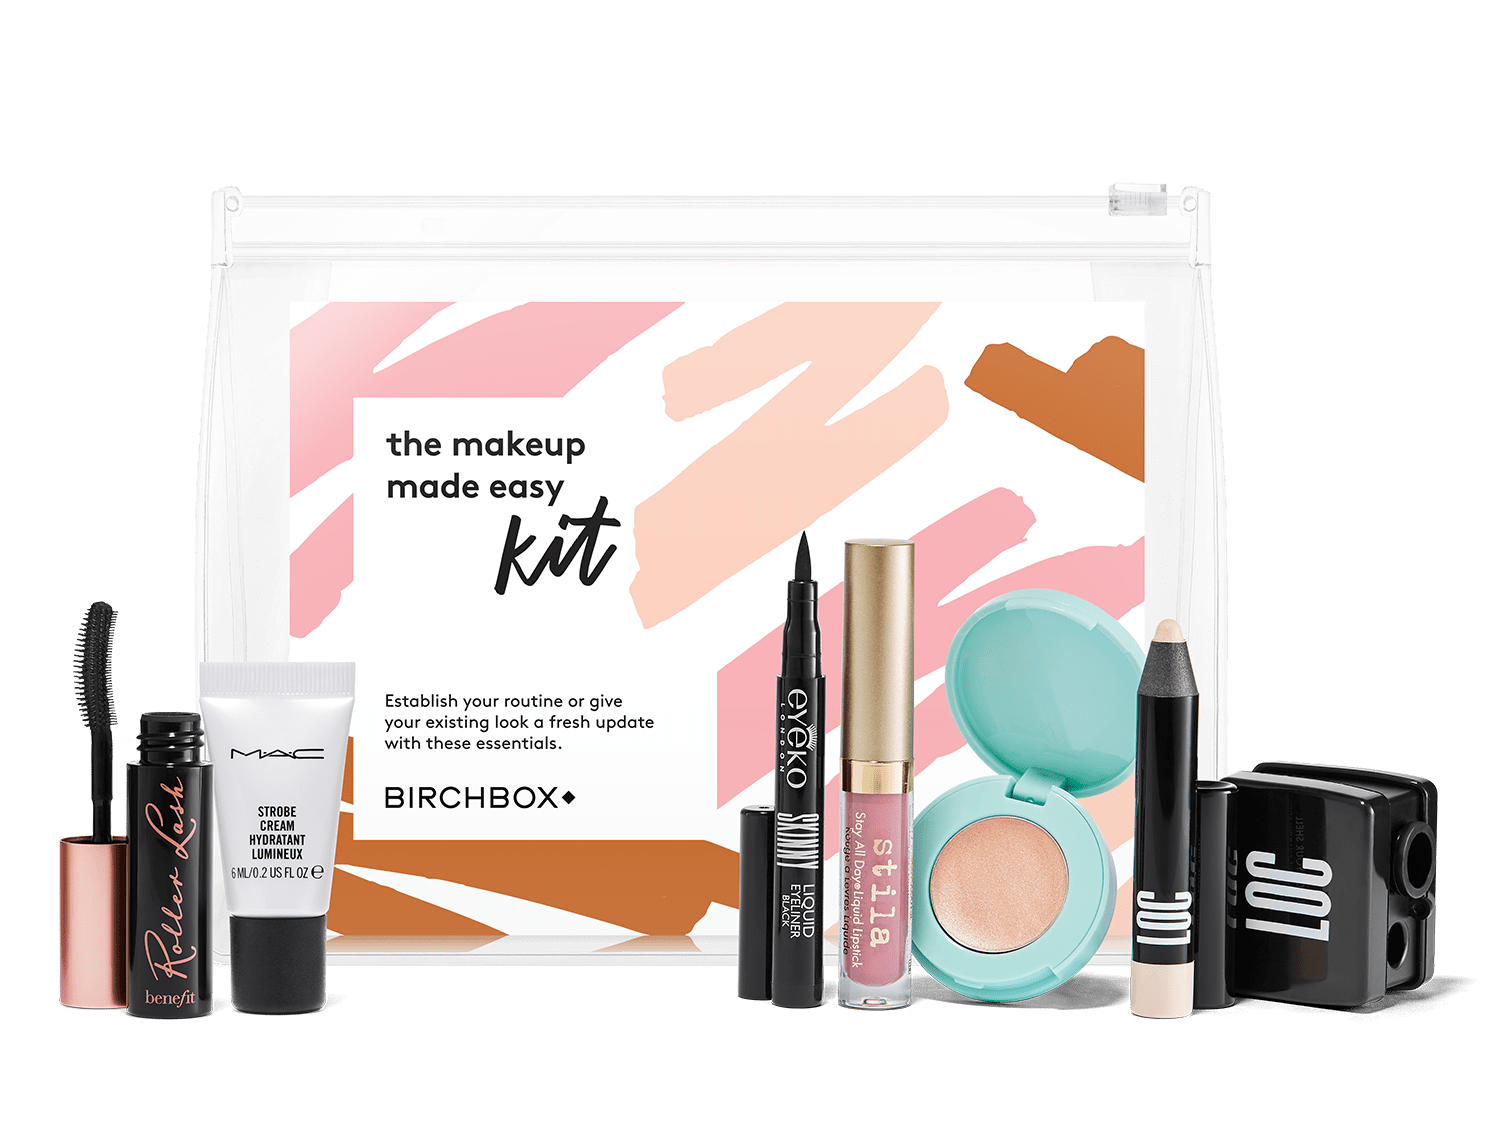 New Birchbox Kit + Free Gift Coupons – The Makeup Made Easy Kit!